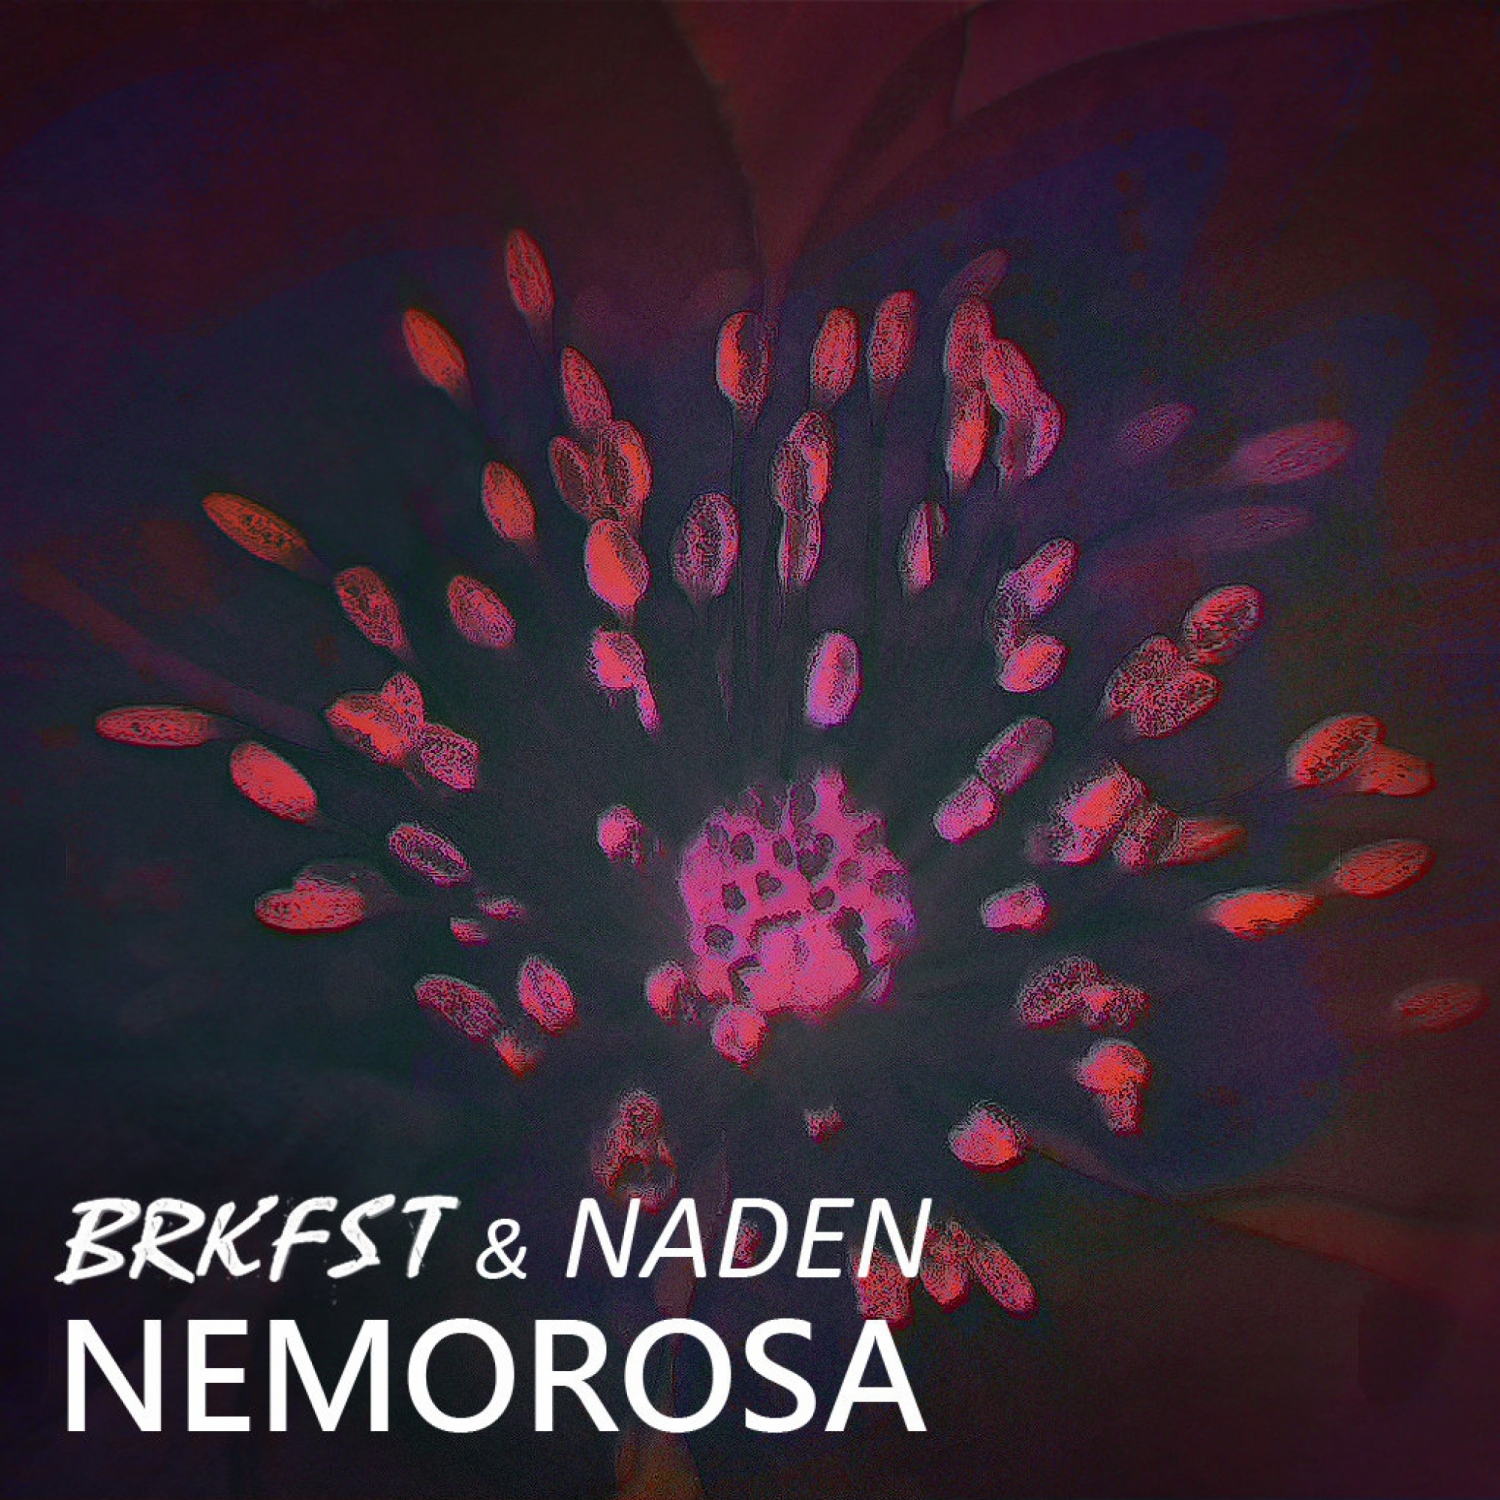 Breakfast  &  Naden  - Nemorosa (BRKFST Remix)